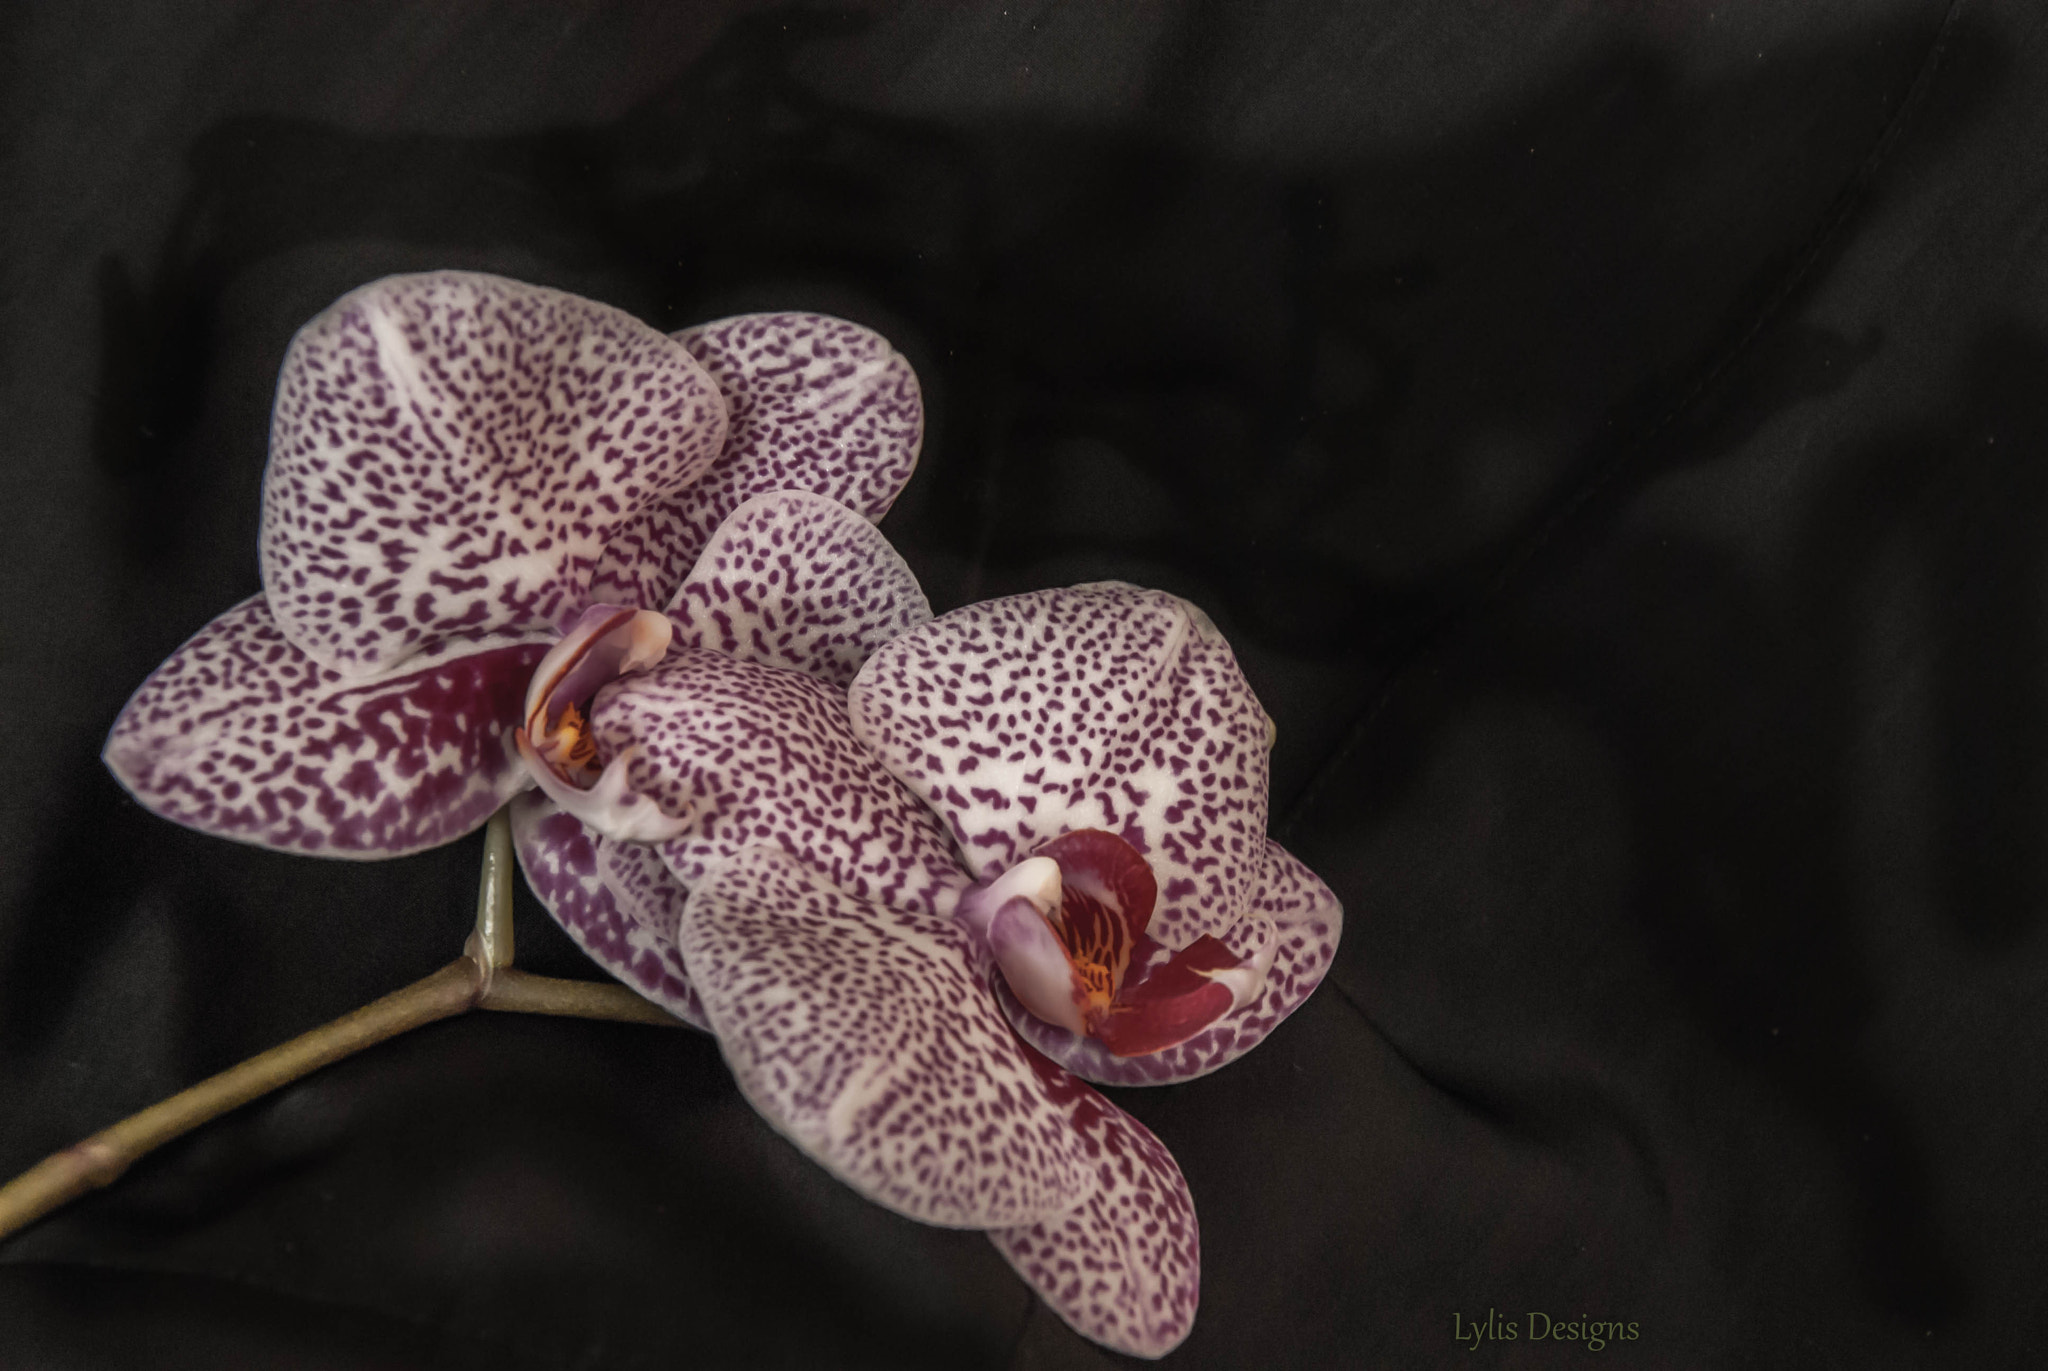 Photograph black orchid by Lylis Designs on 500px